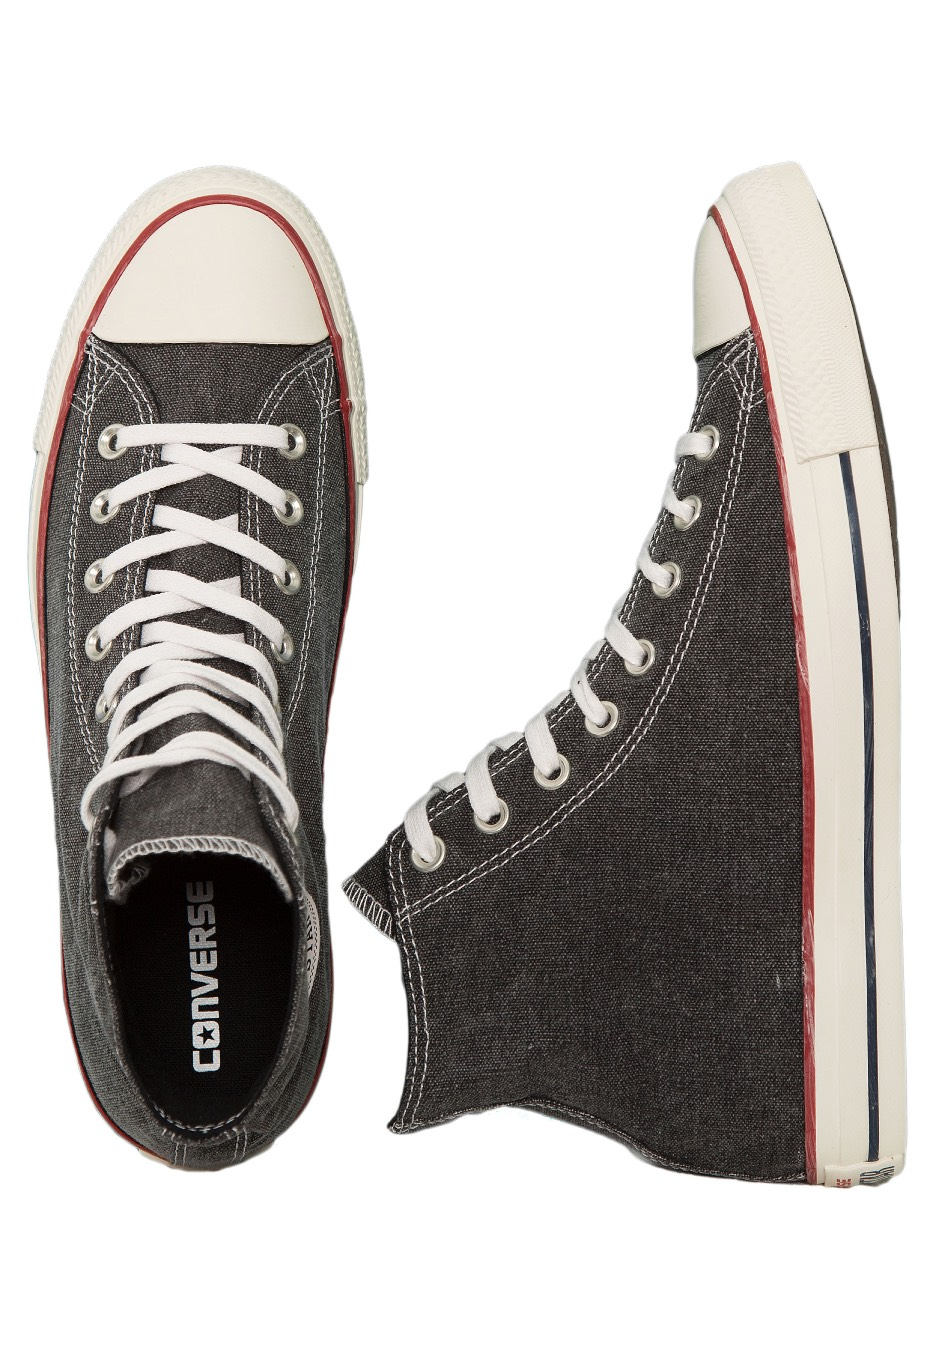 Converse Shoes - Shop Converse All Star Sneakers - Famous ...